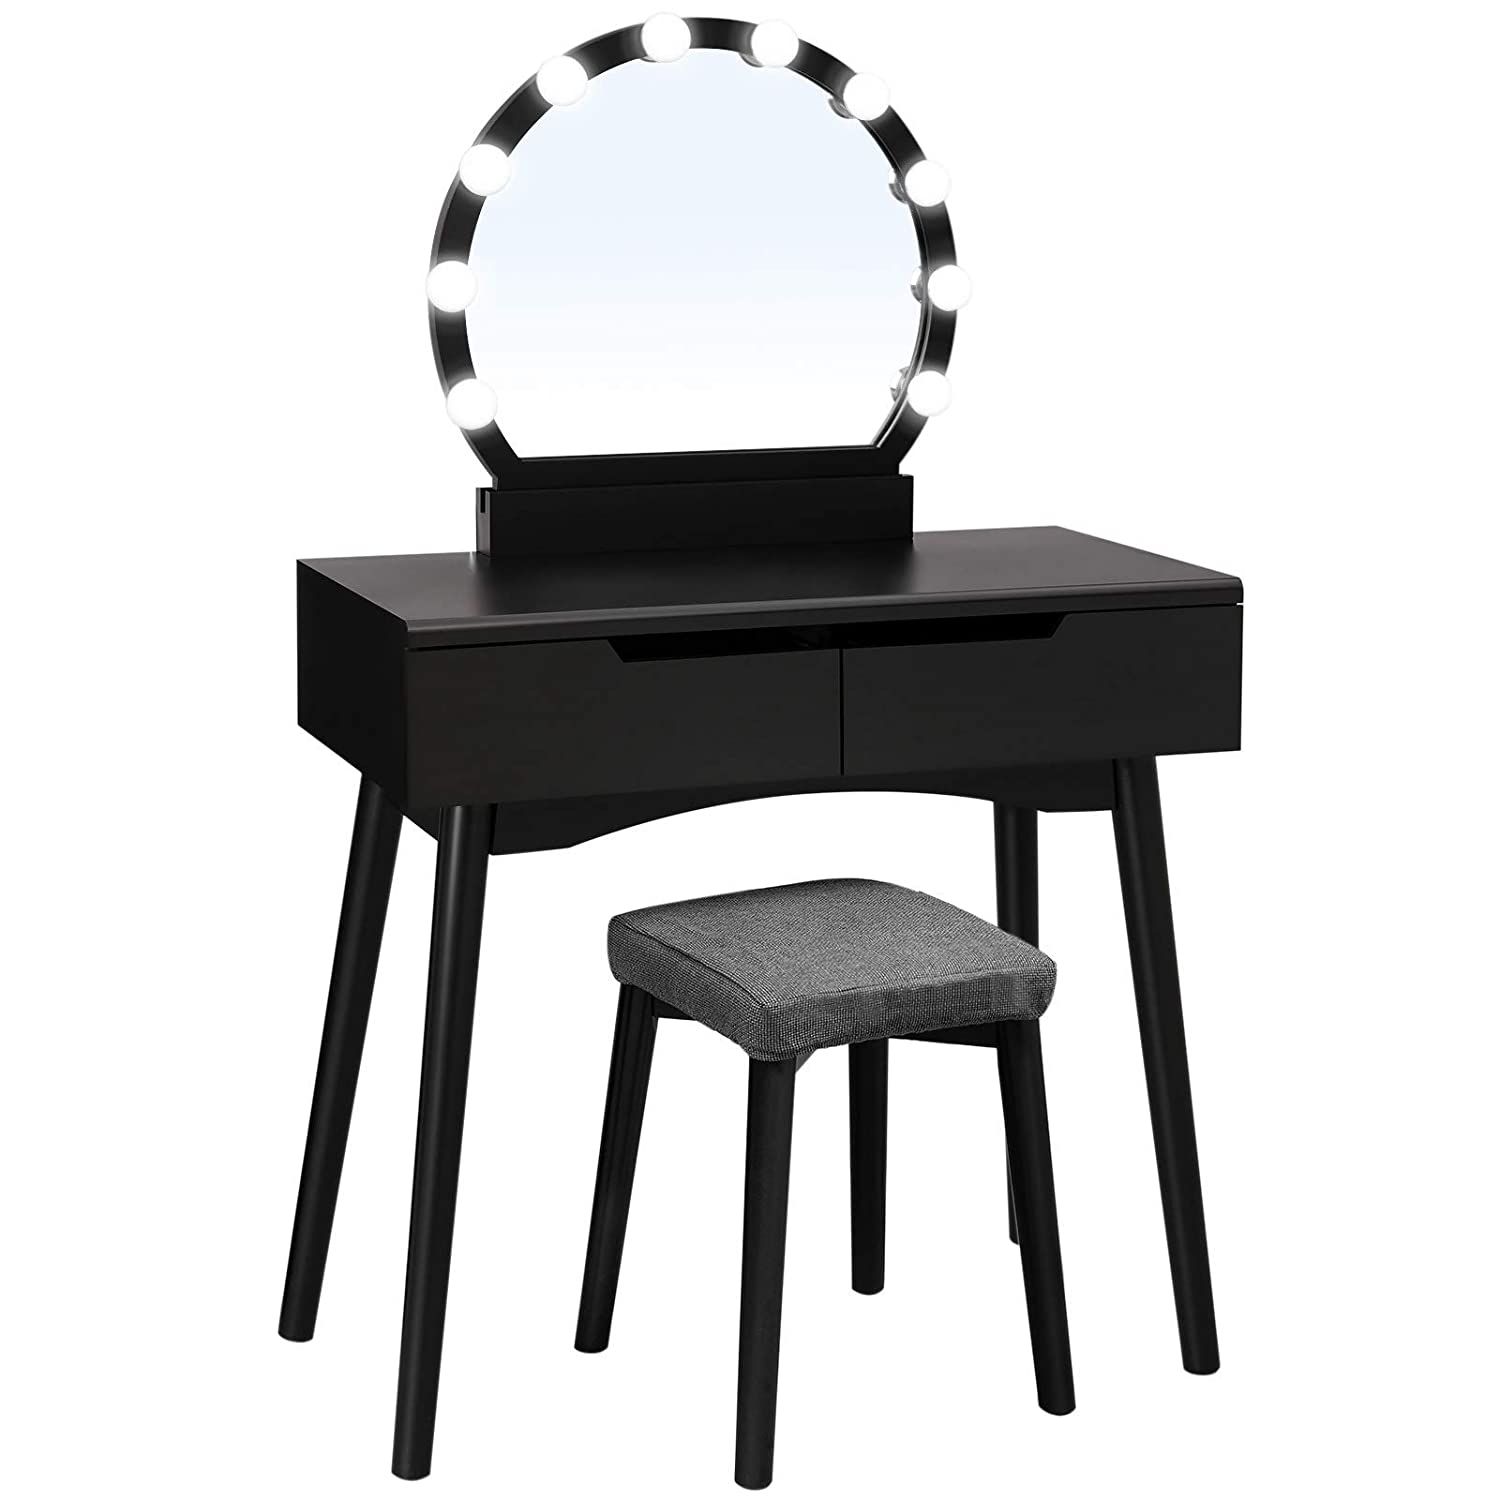 VASAGLE Vanity Set with 10 Light Bulbs and Touch Switch, Dressing Makeup Table Desk with Large Round Mirror, 2 Sliding Drawers, 1 Cushioned Stool for Bedroom, Bathroom, Black URDT11BL